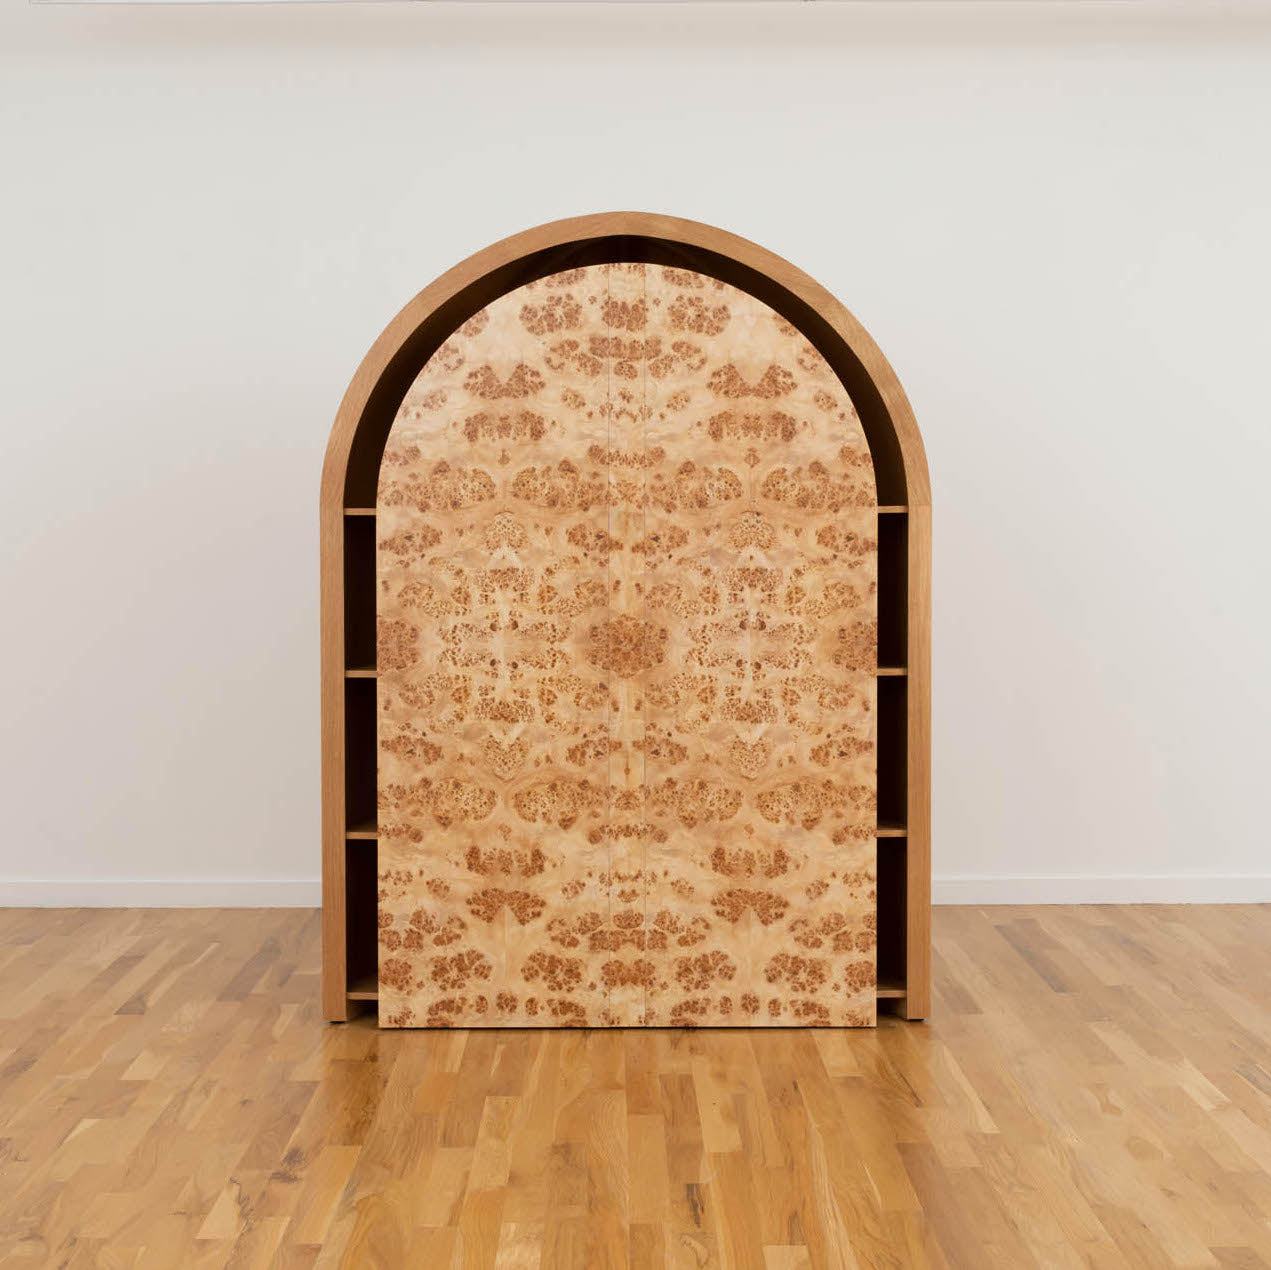 Burly Mappa Cabinet by Ross Hansen, a one-of-a-kind made of Mappa burle and oak veneer. Photo © Volume Gallery